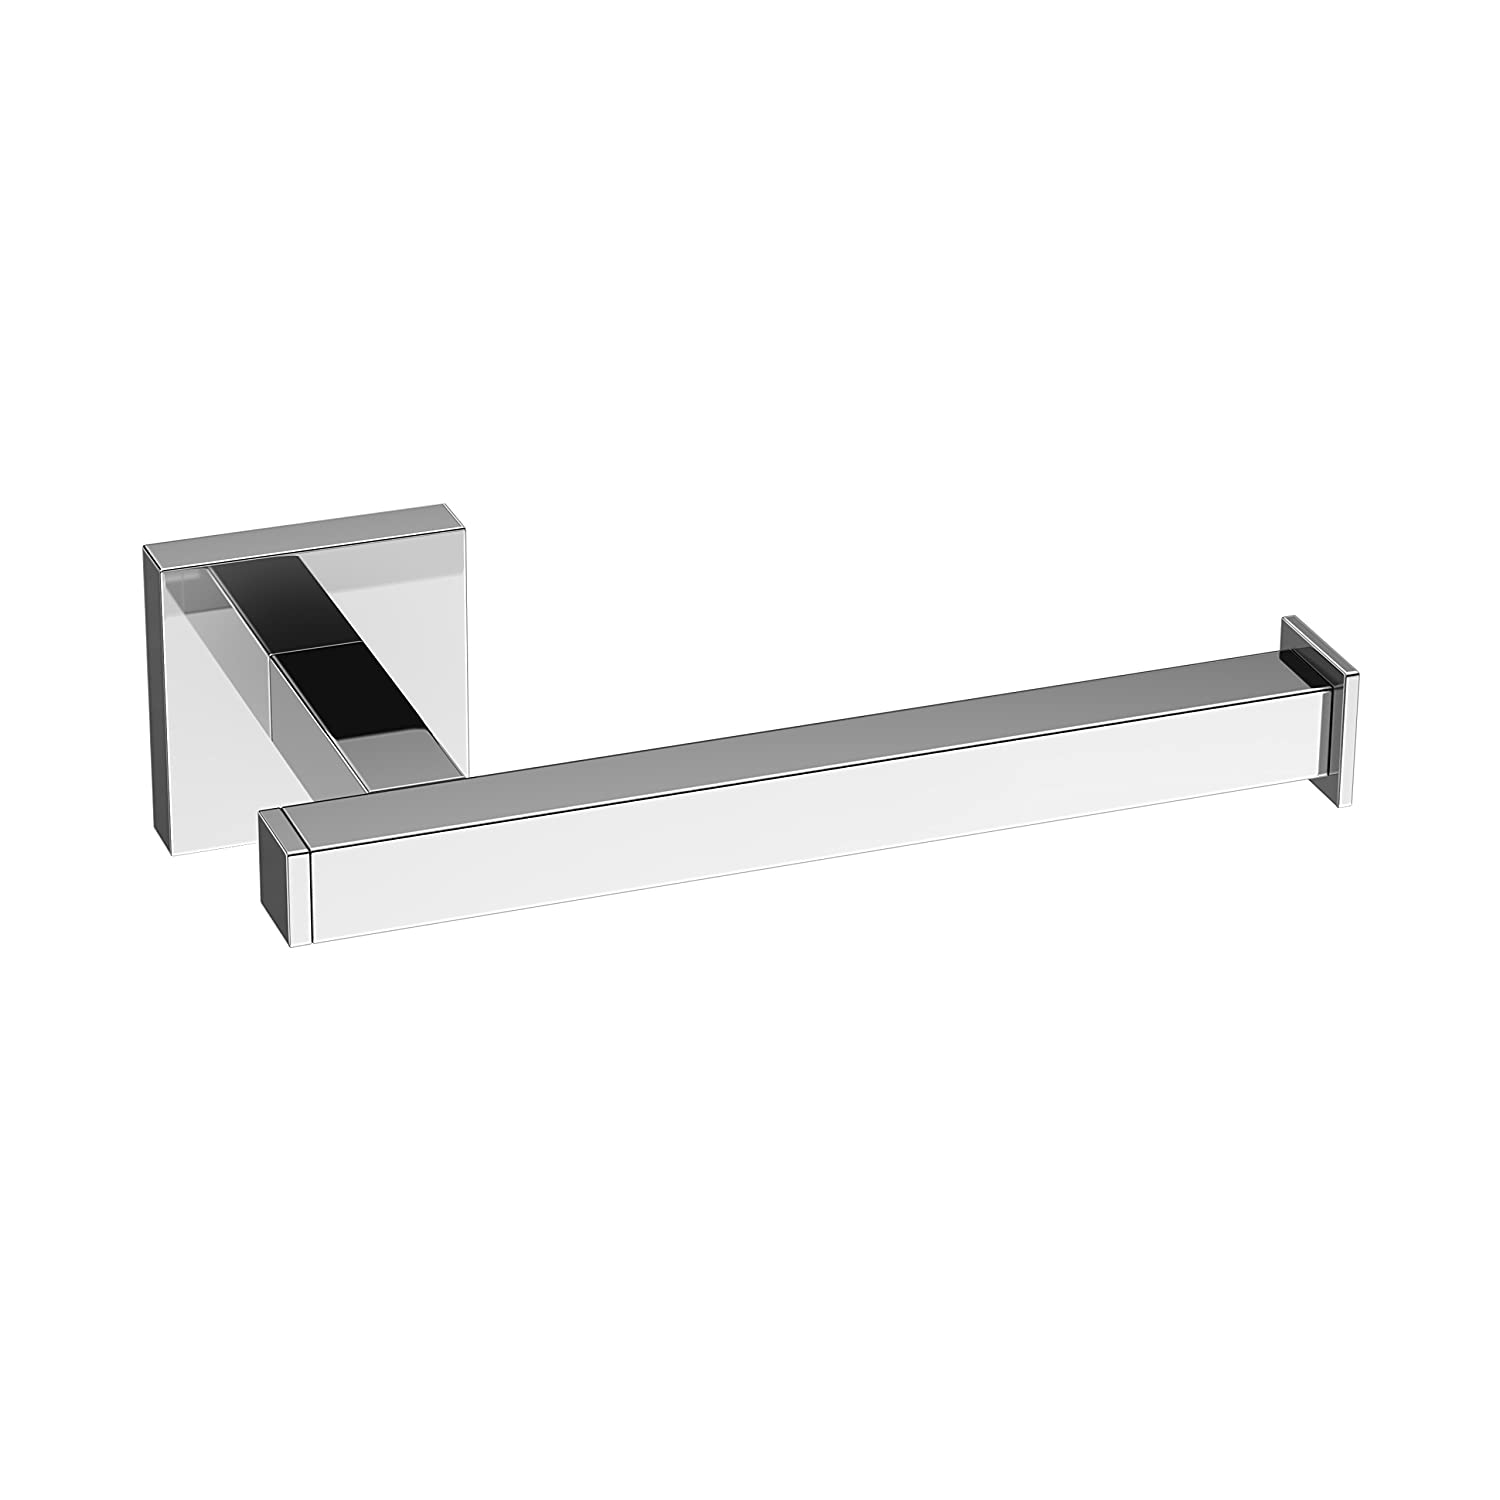 modern chrome toilet roll holder wall mounted square bathroom accessory acc120 ibathuk amazoncouk kitchen home